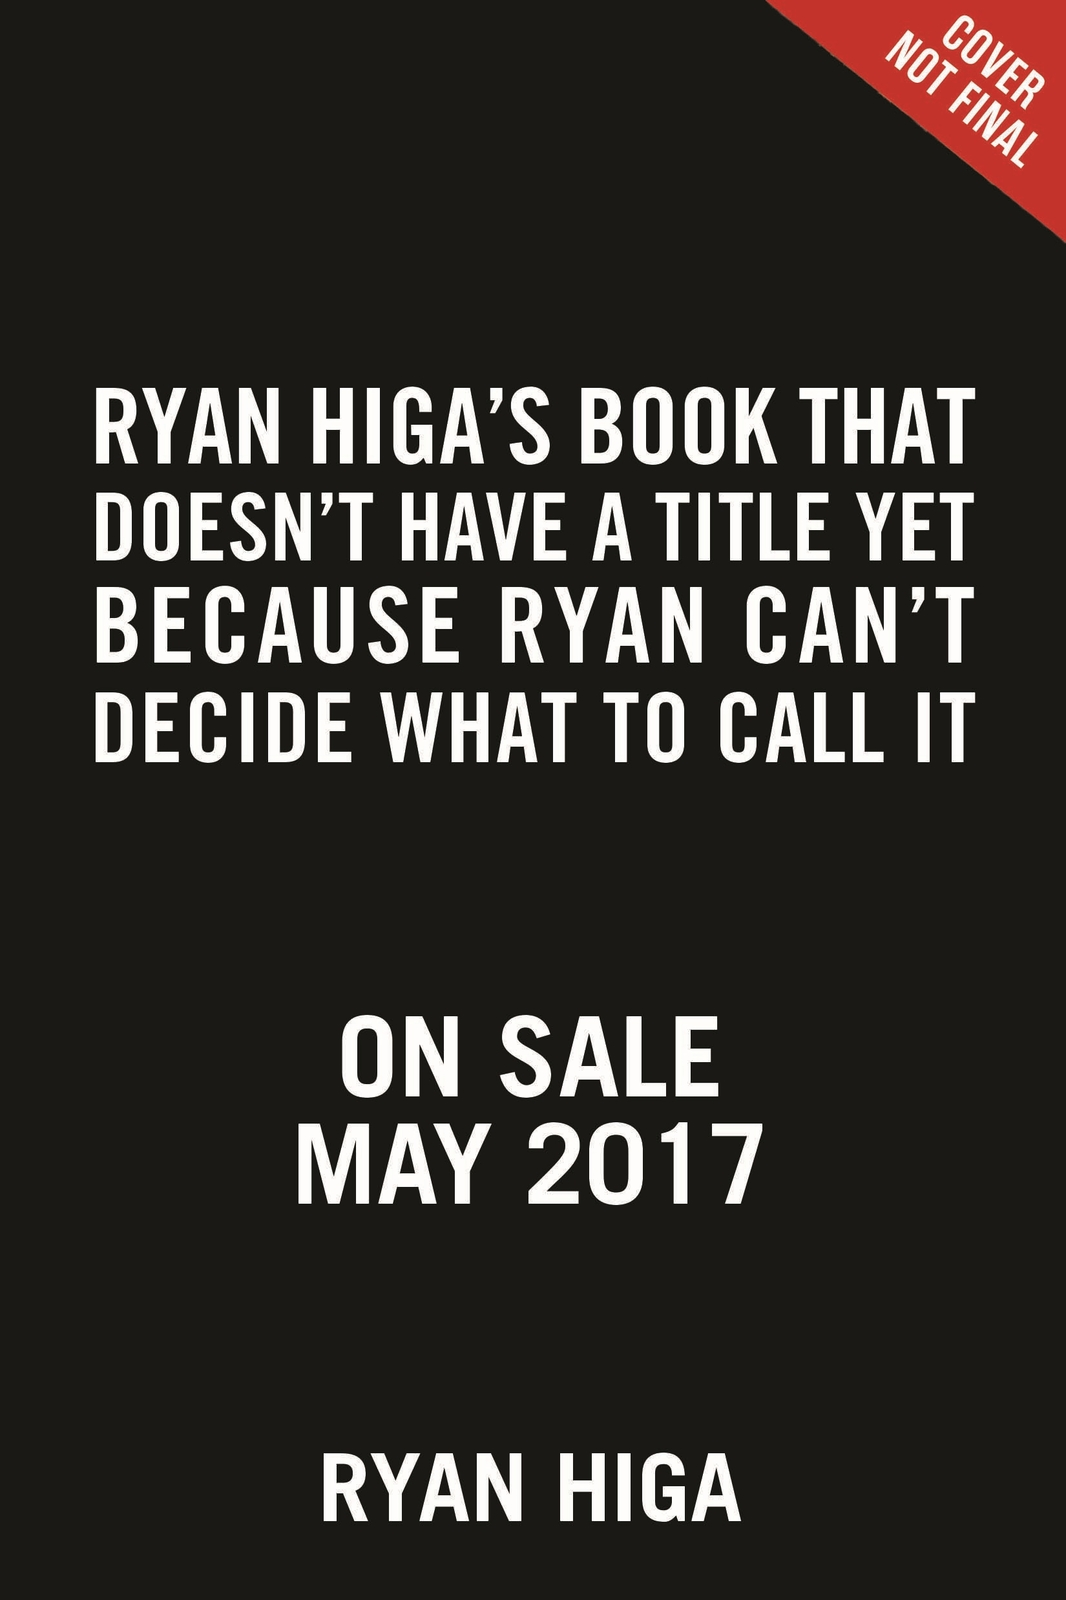 Ryan Higa's Book That Doesn't Have a Title Yet Because Ryan Can't Decide What to Call It by Ryan Higa image